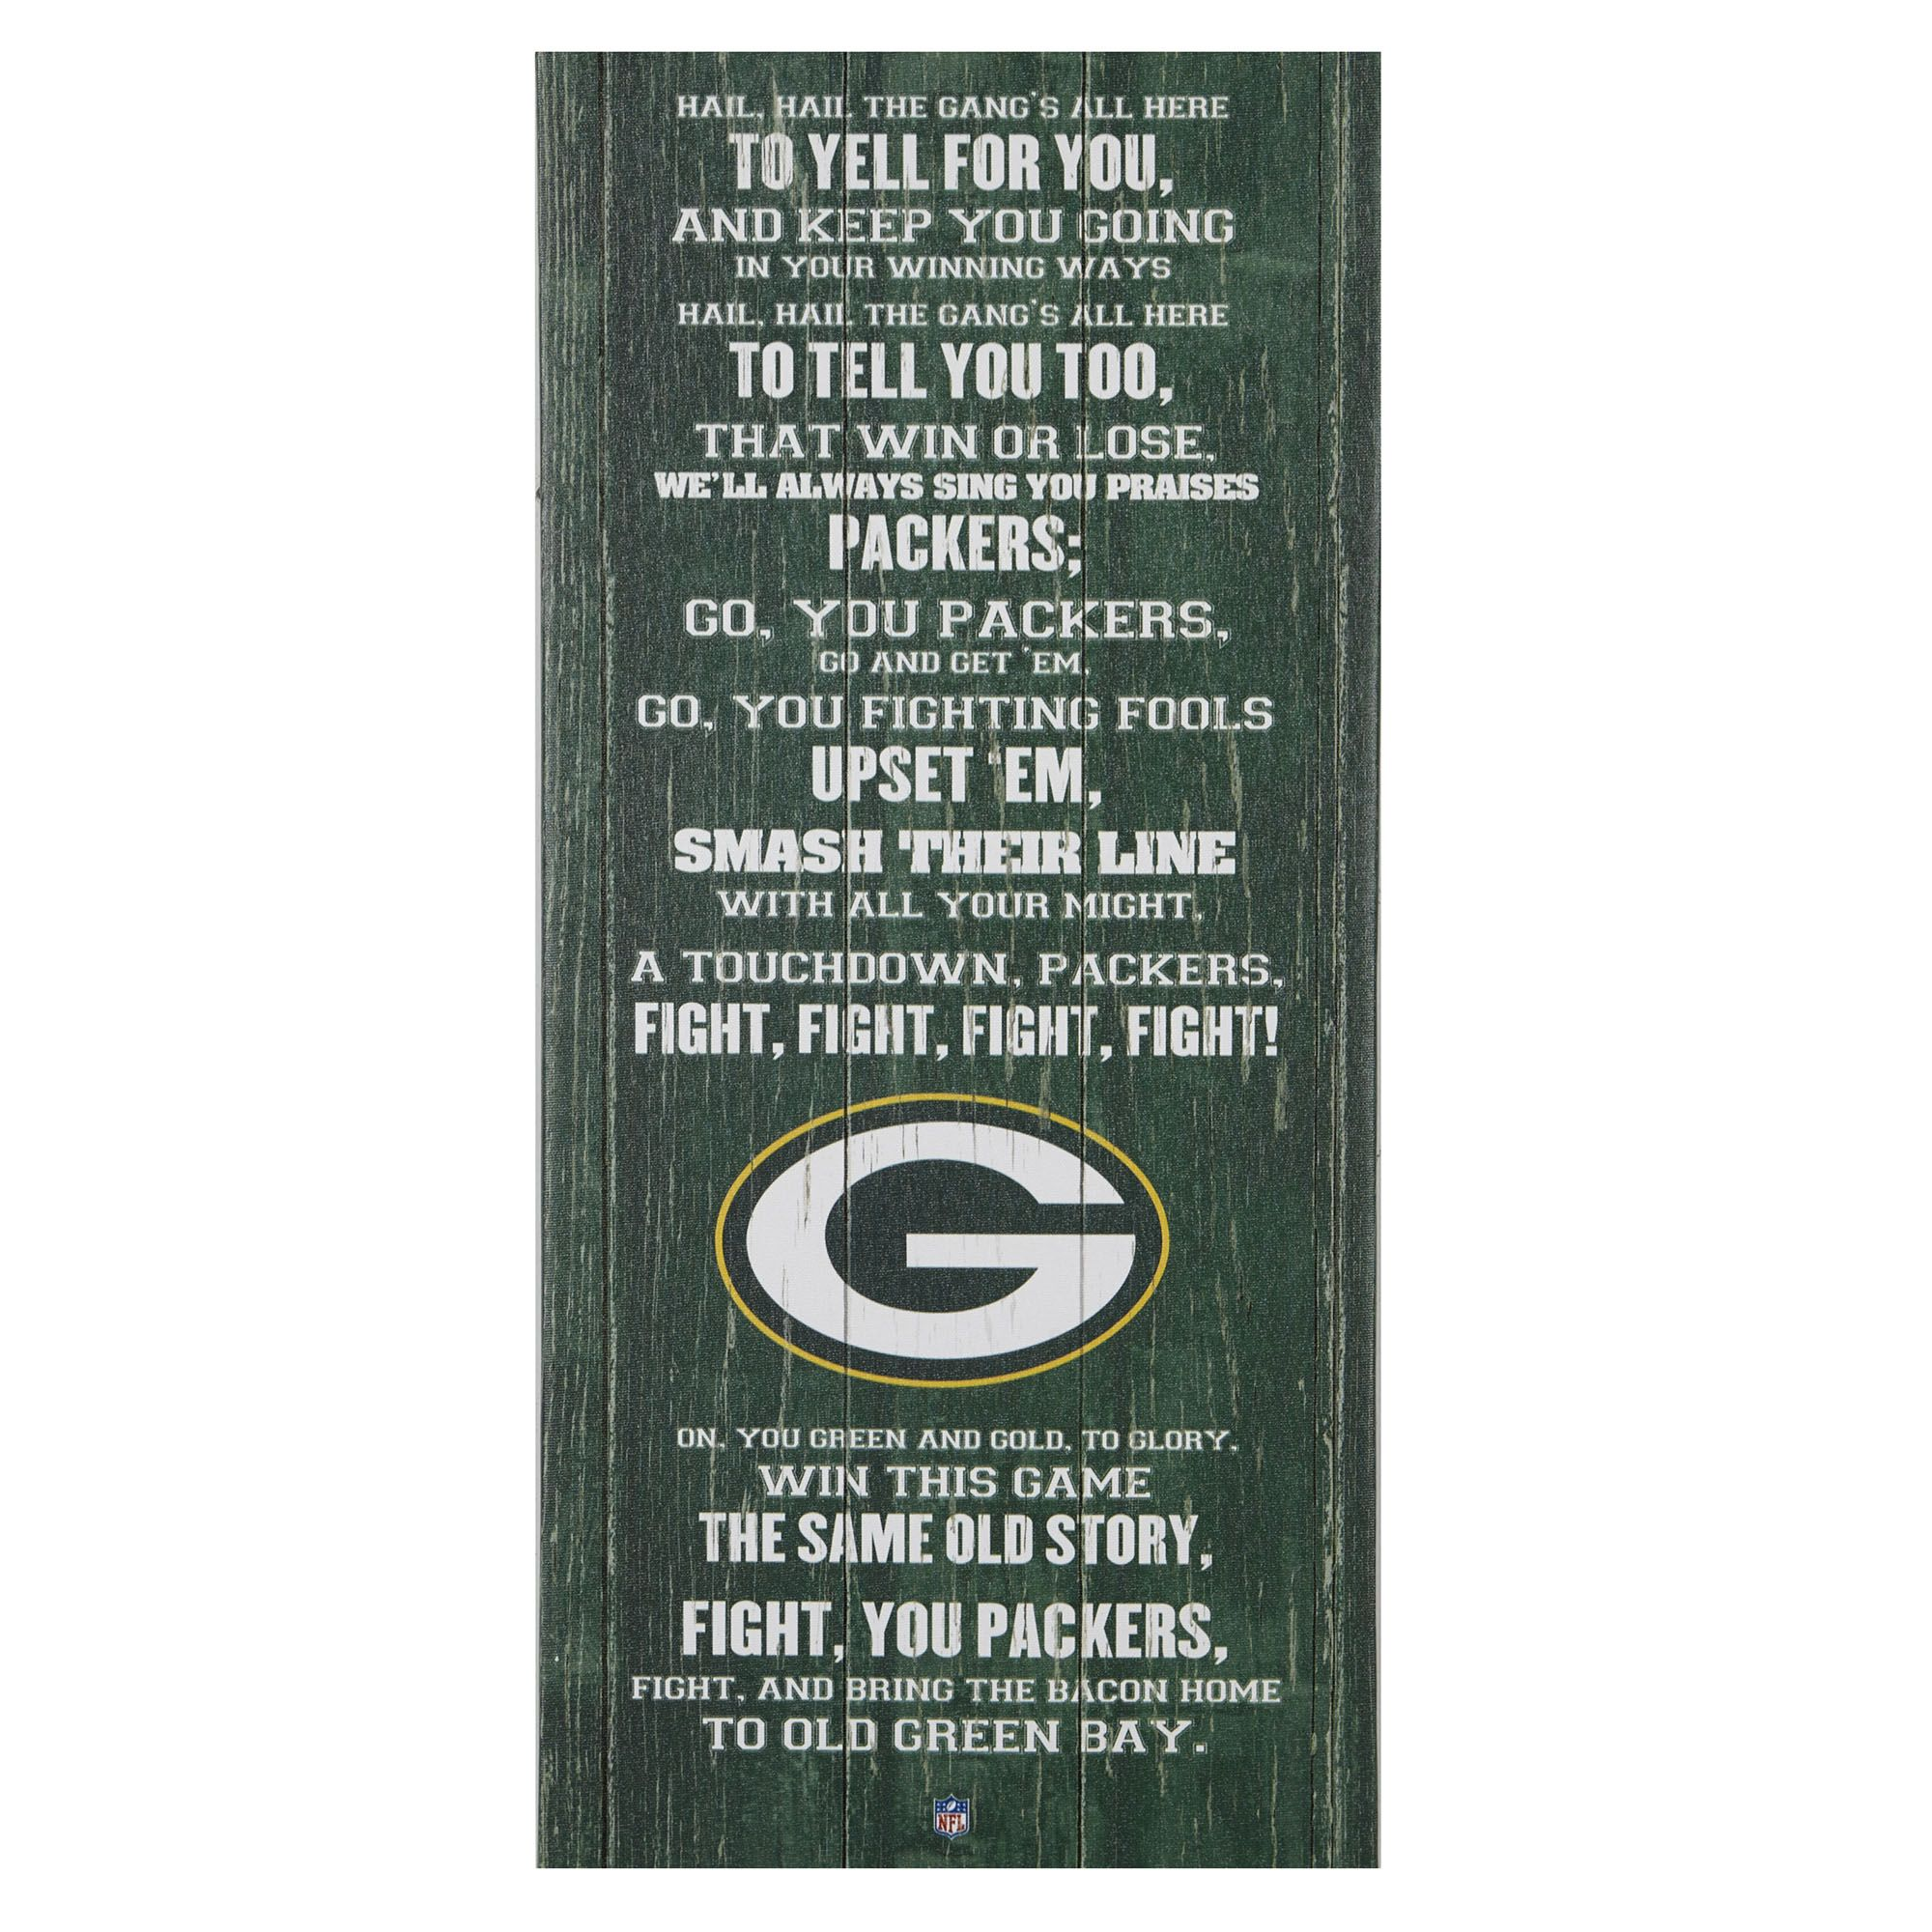 Green bay packers fight song wall decor 26 x 12 gordmans green bay packers fight song wall decor 26 x 12 gordmans amipublicfo Image collections